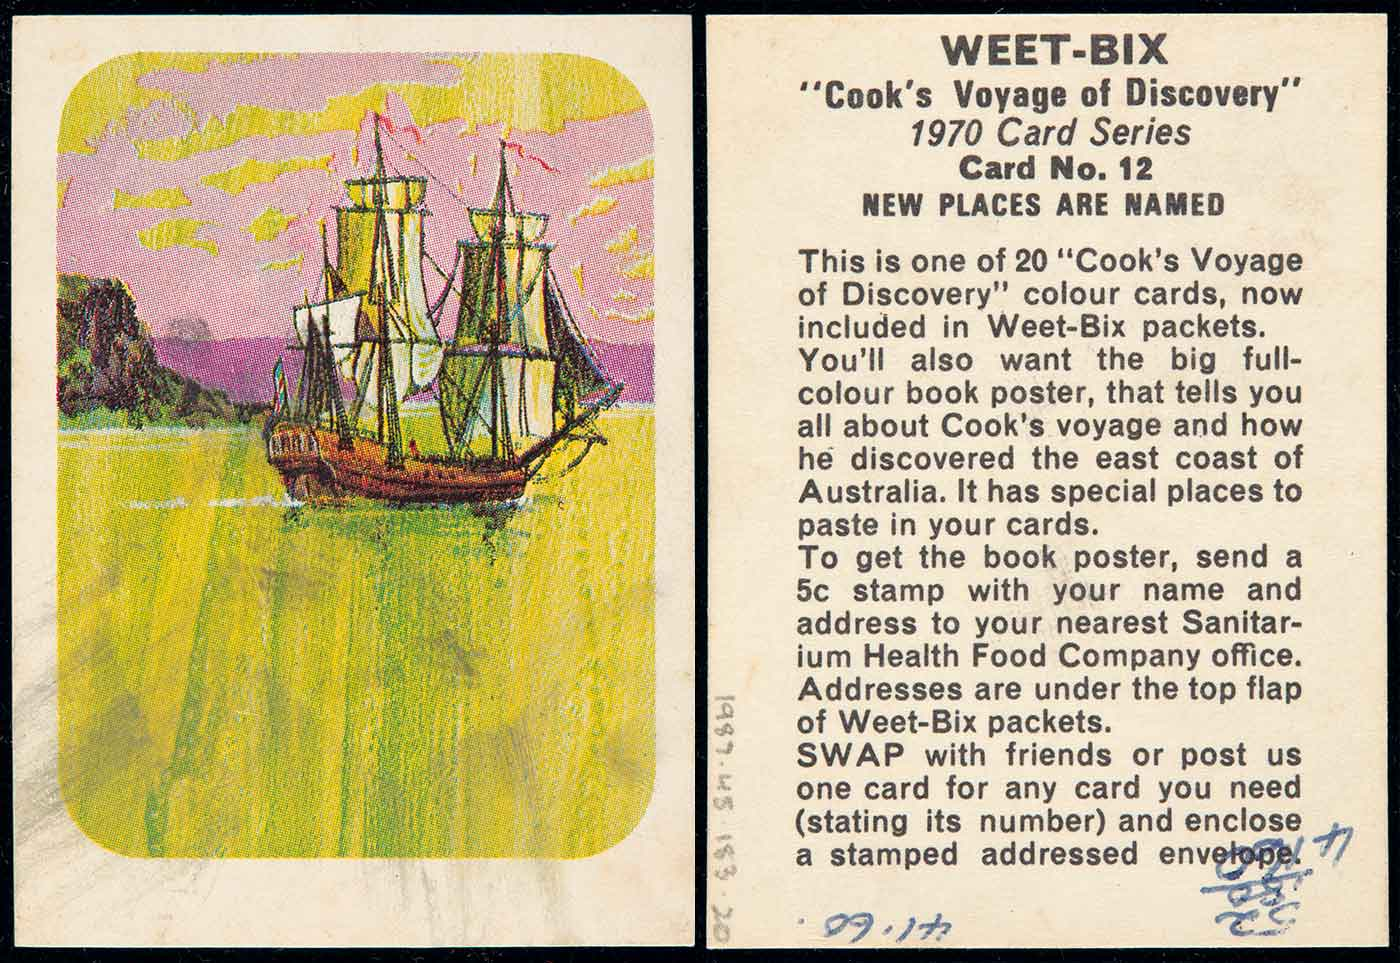 A swap card, numbered 12 in a series of 20, collected from a Weetbix cereal packet. The card features a colour illustration of a fully rigged ship sailing past a coast. The ocean is lime green and the sky is pink. Text on the reverse side of the card reads 'WEET-BIX /